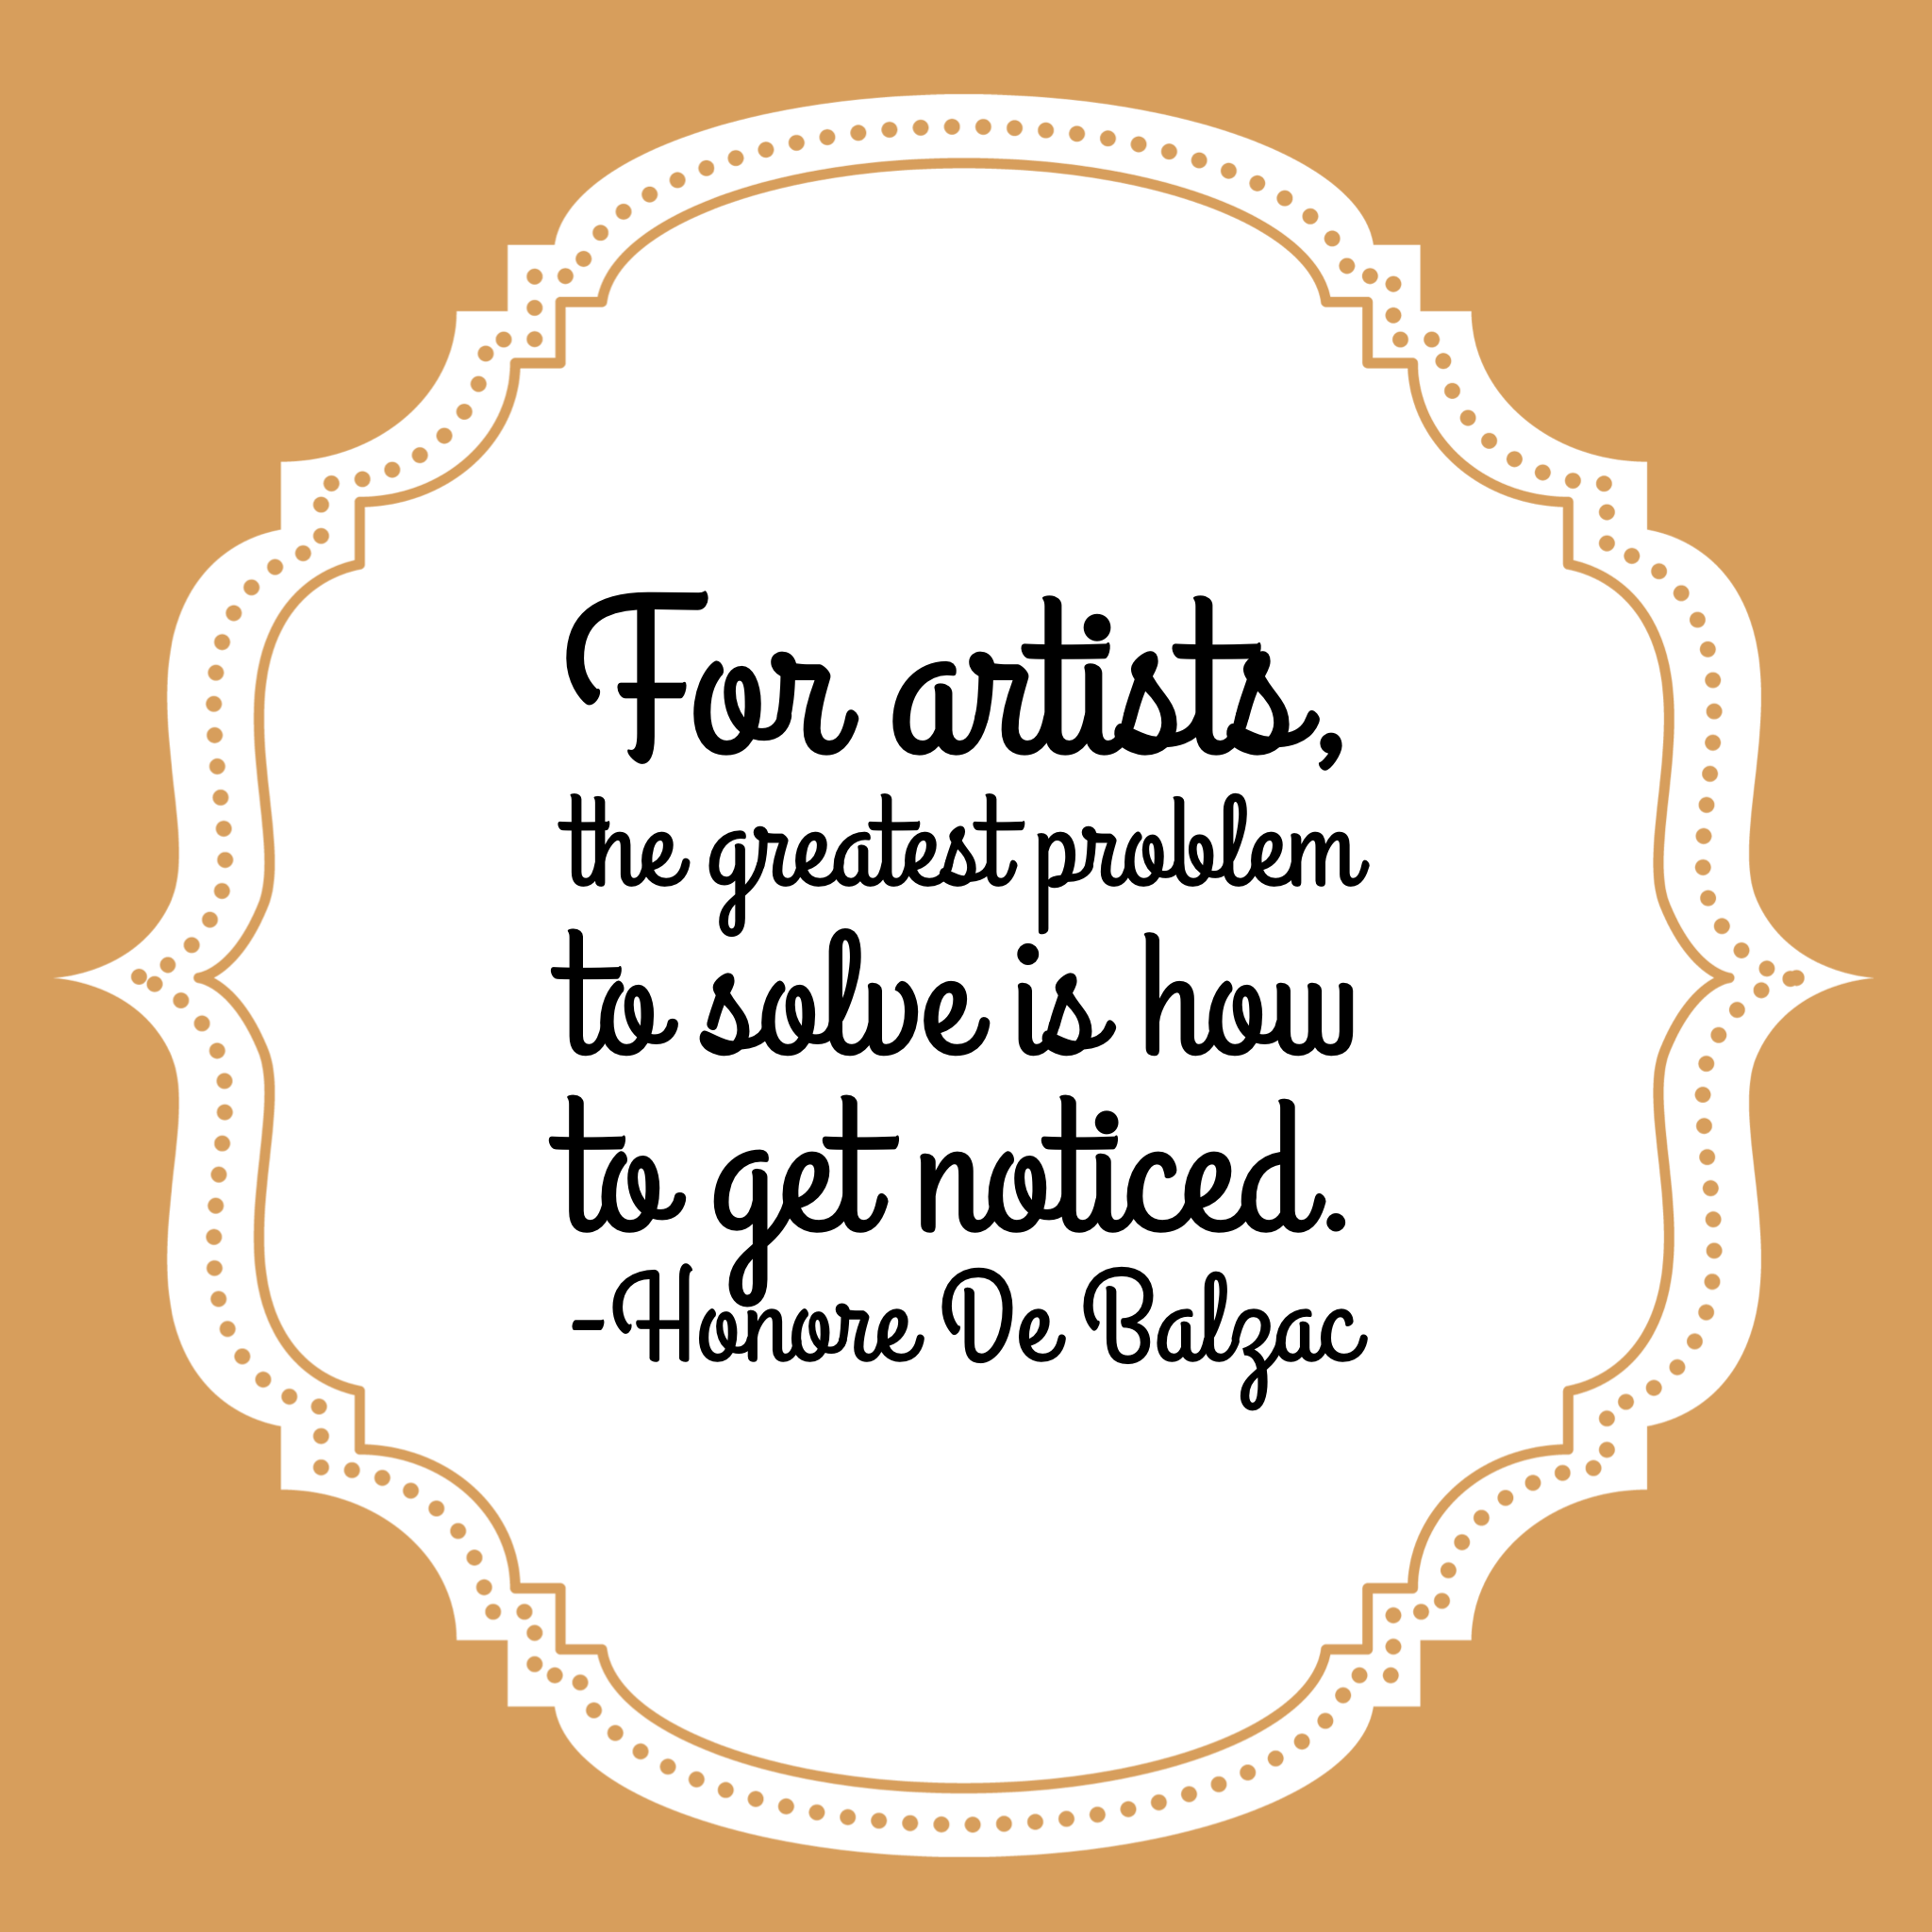 For artists, the greatest problem to solve is how to get noticed